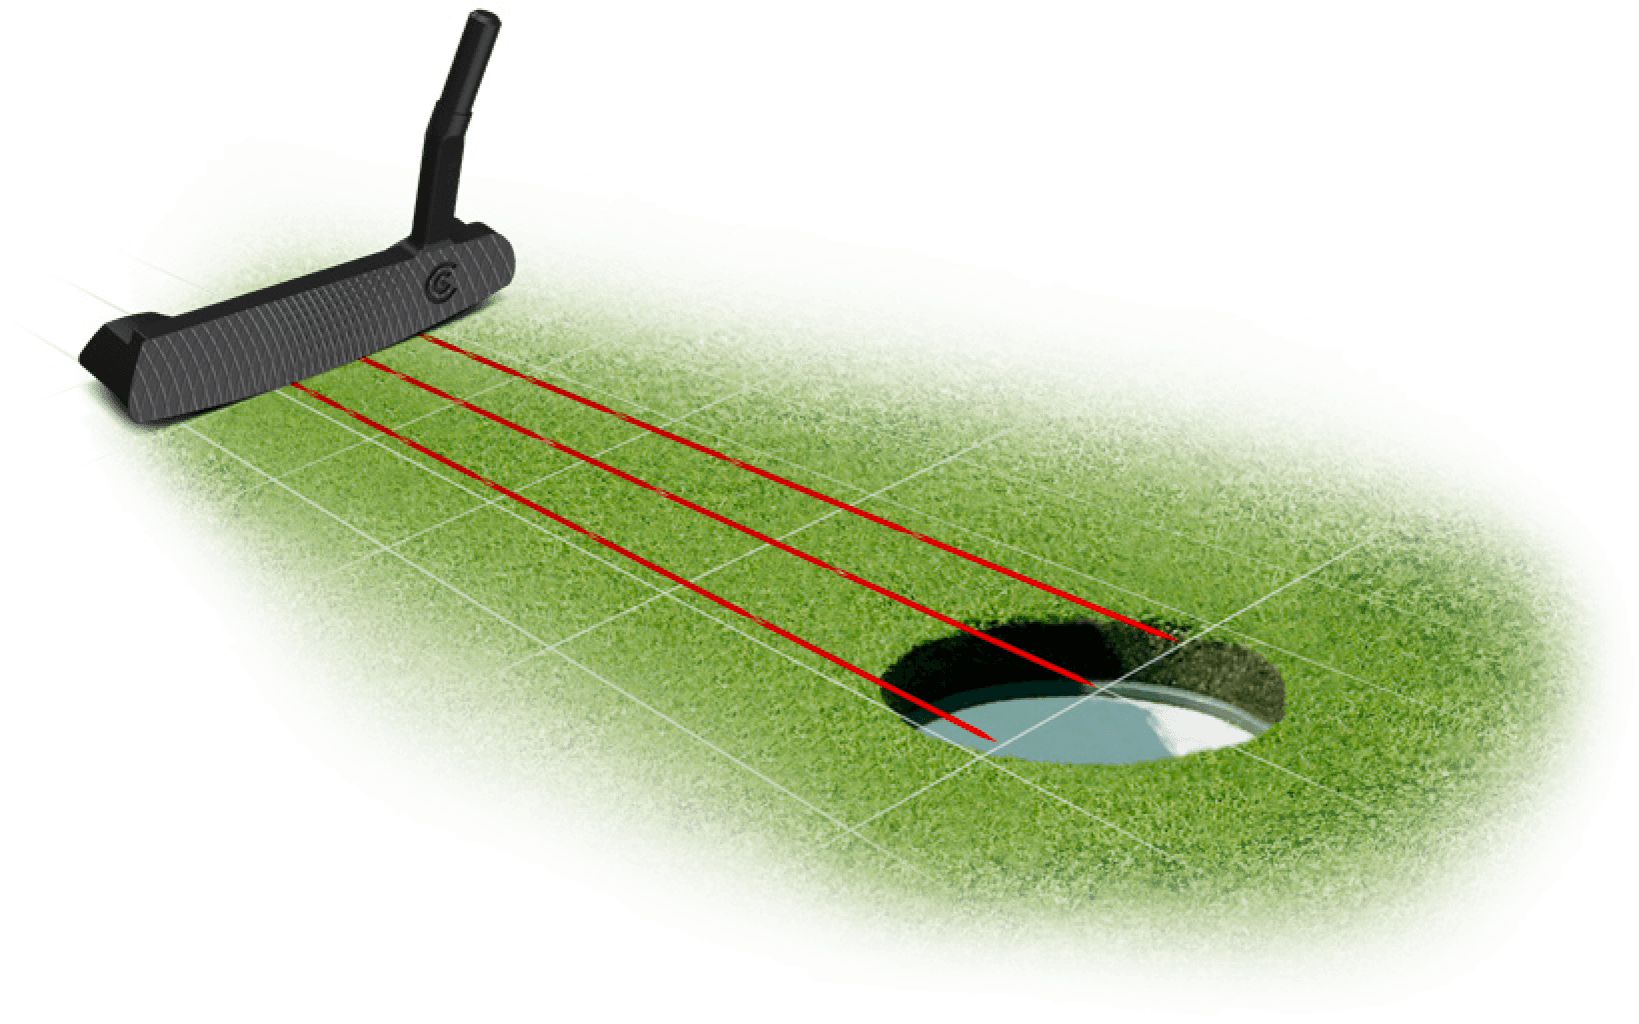 Putter with SOFT